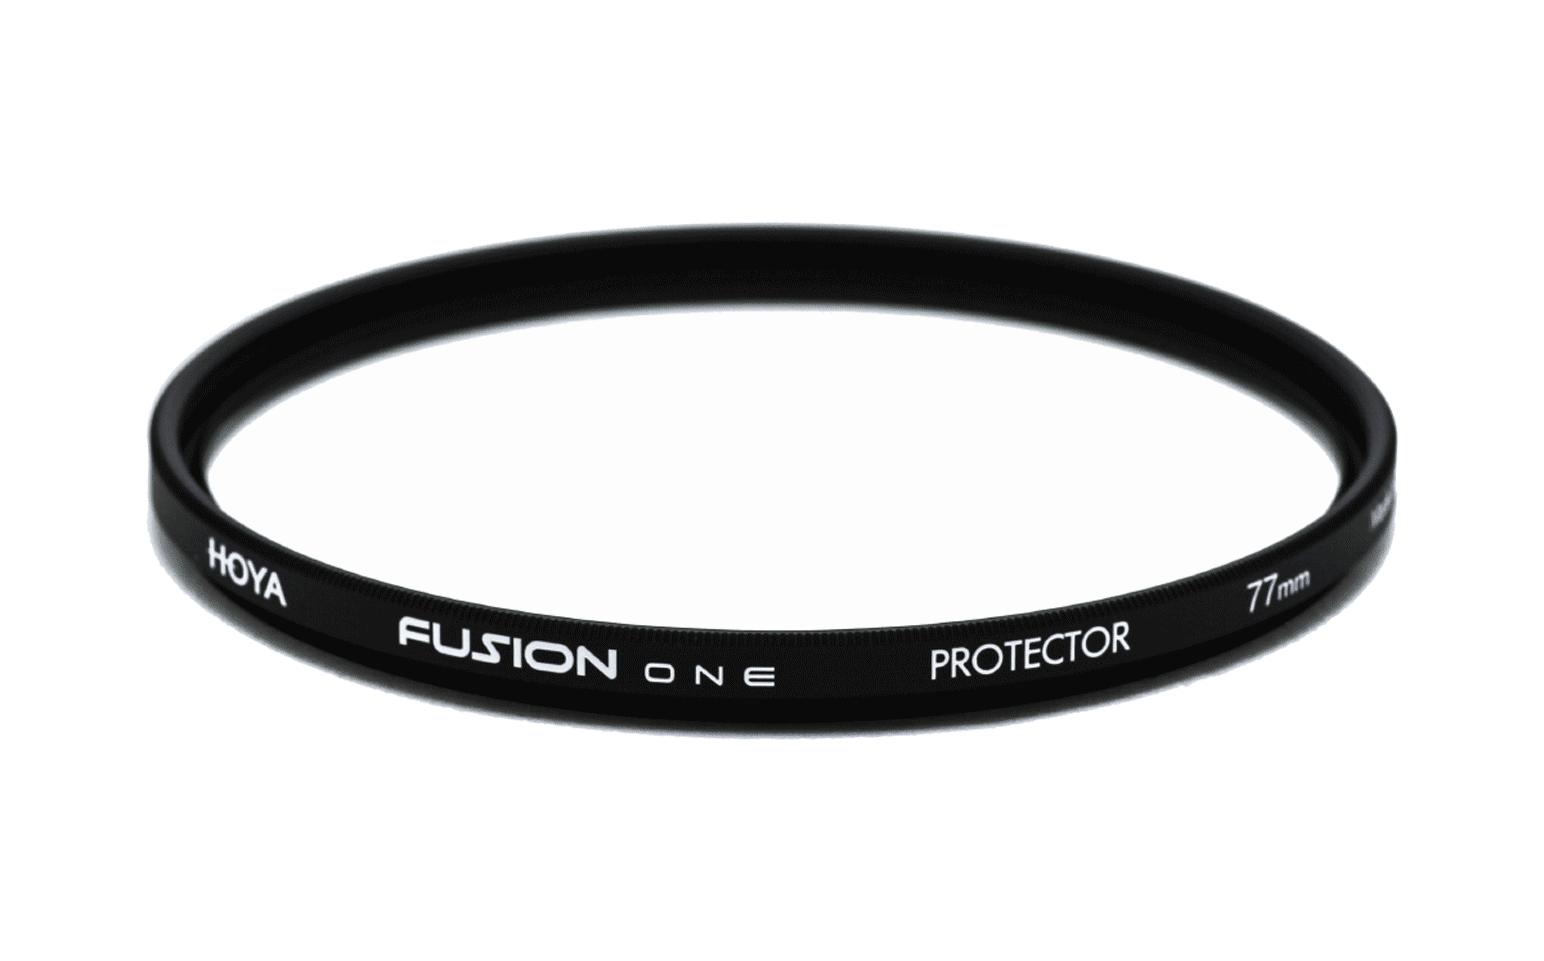 Hoya Fusion ONE Protector Filter 62mm